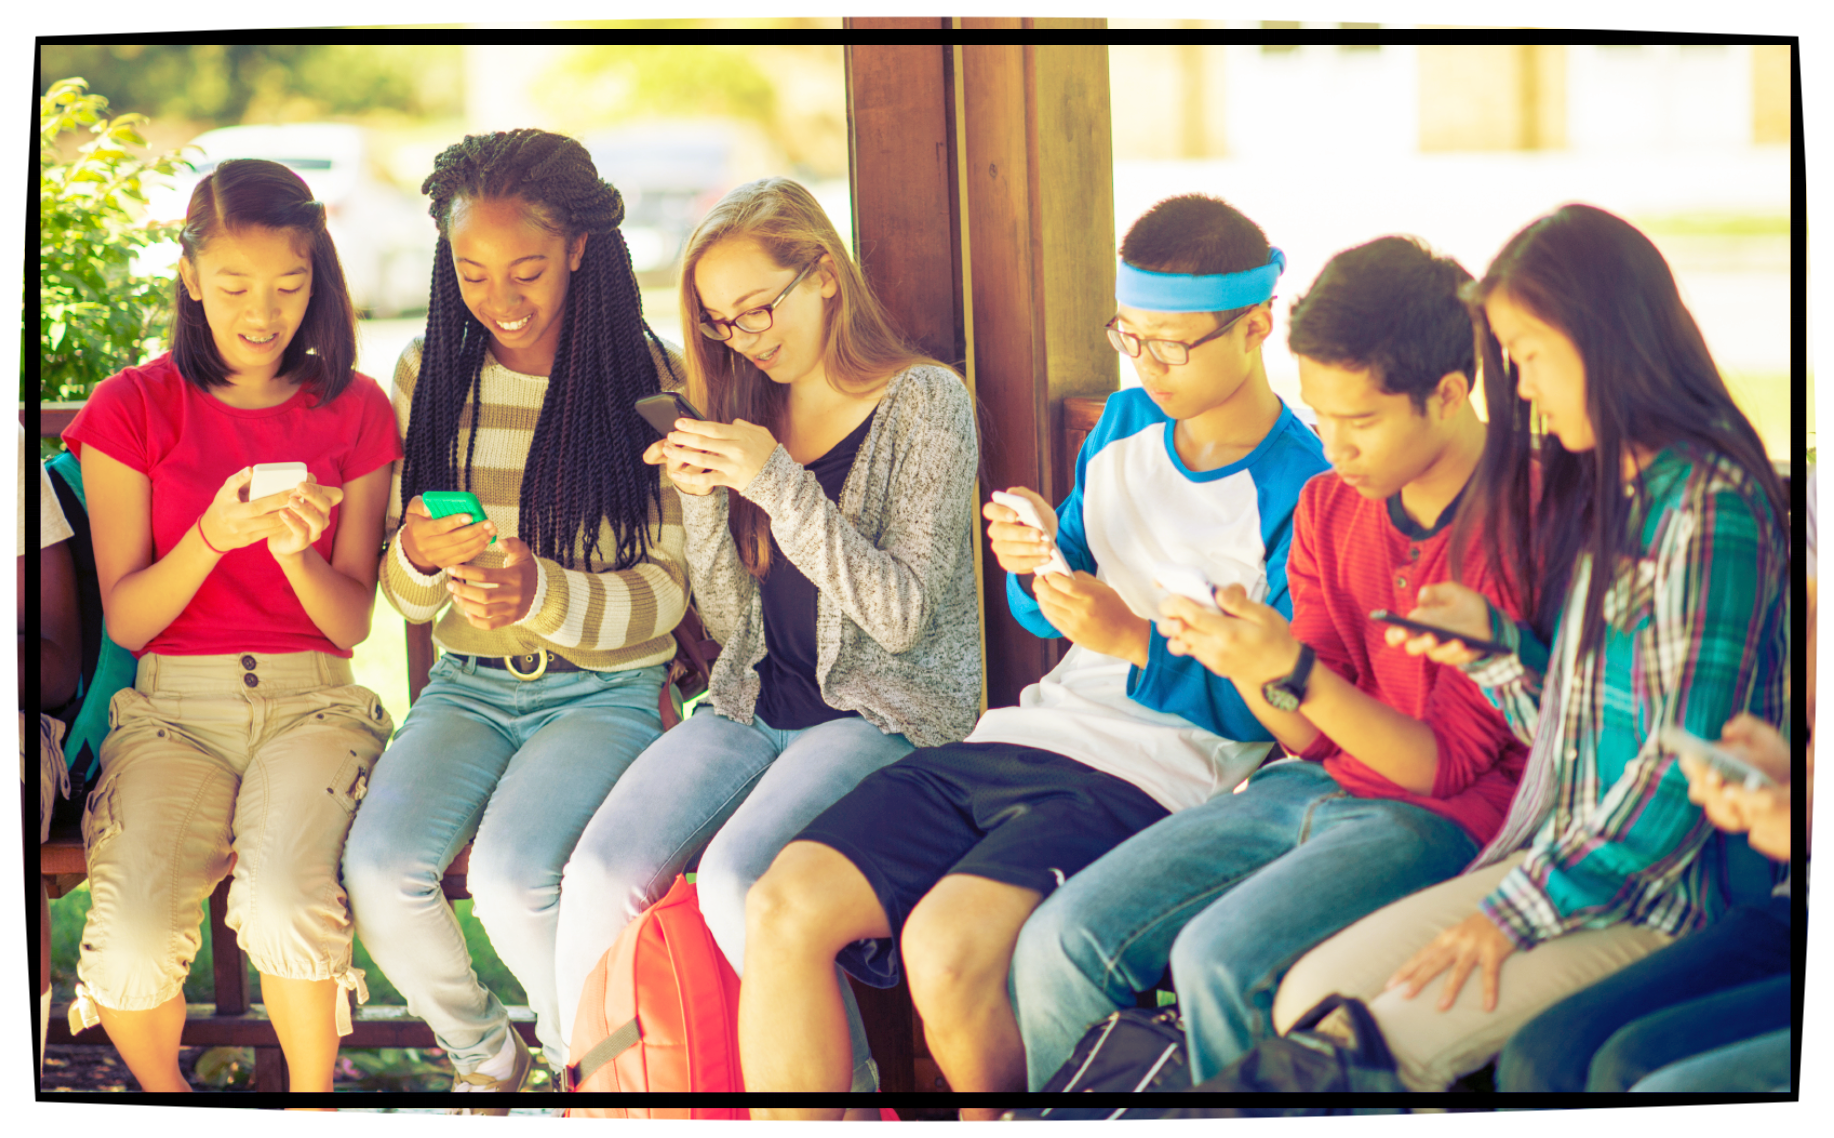 Popular Teen Apps You Need to Know About